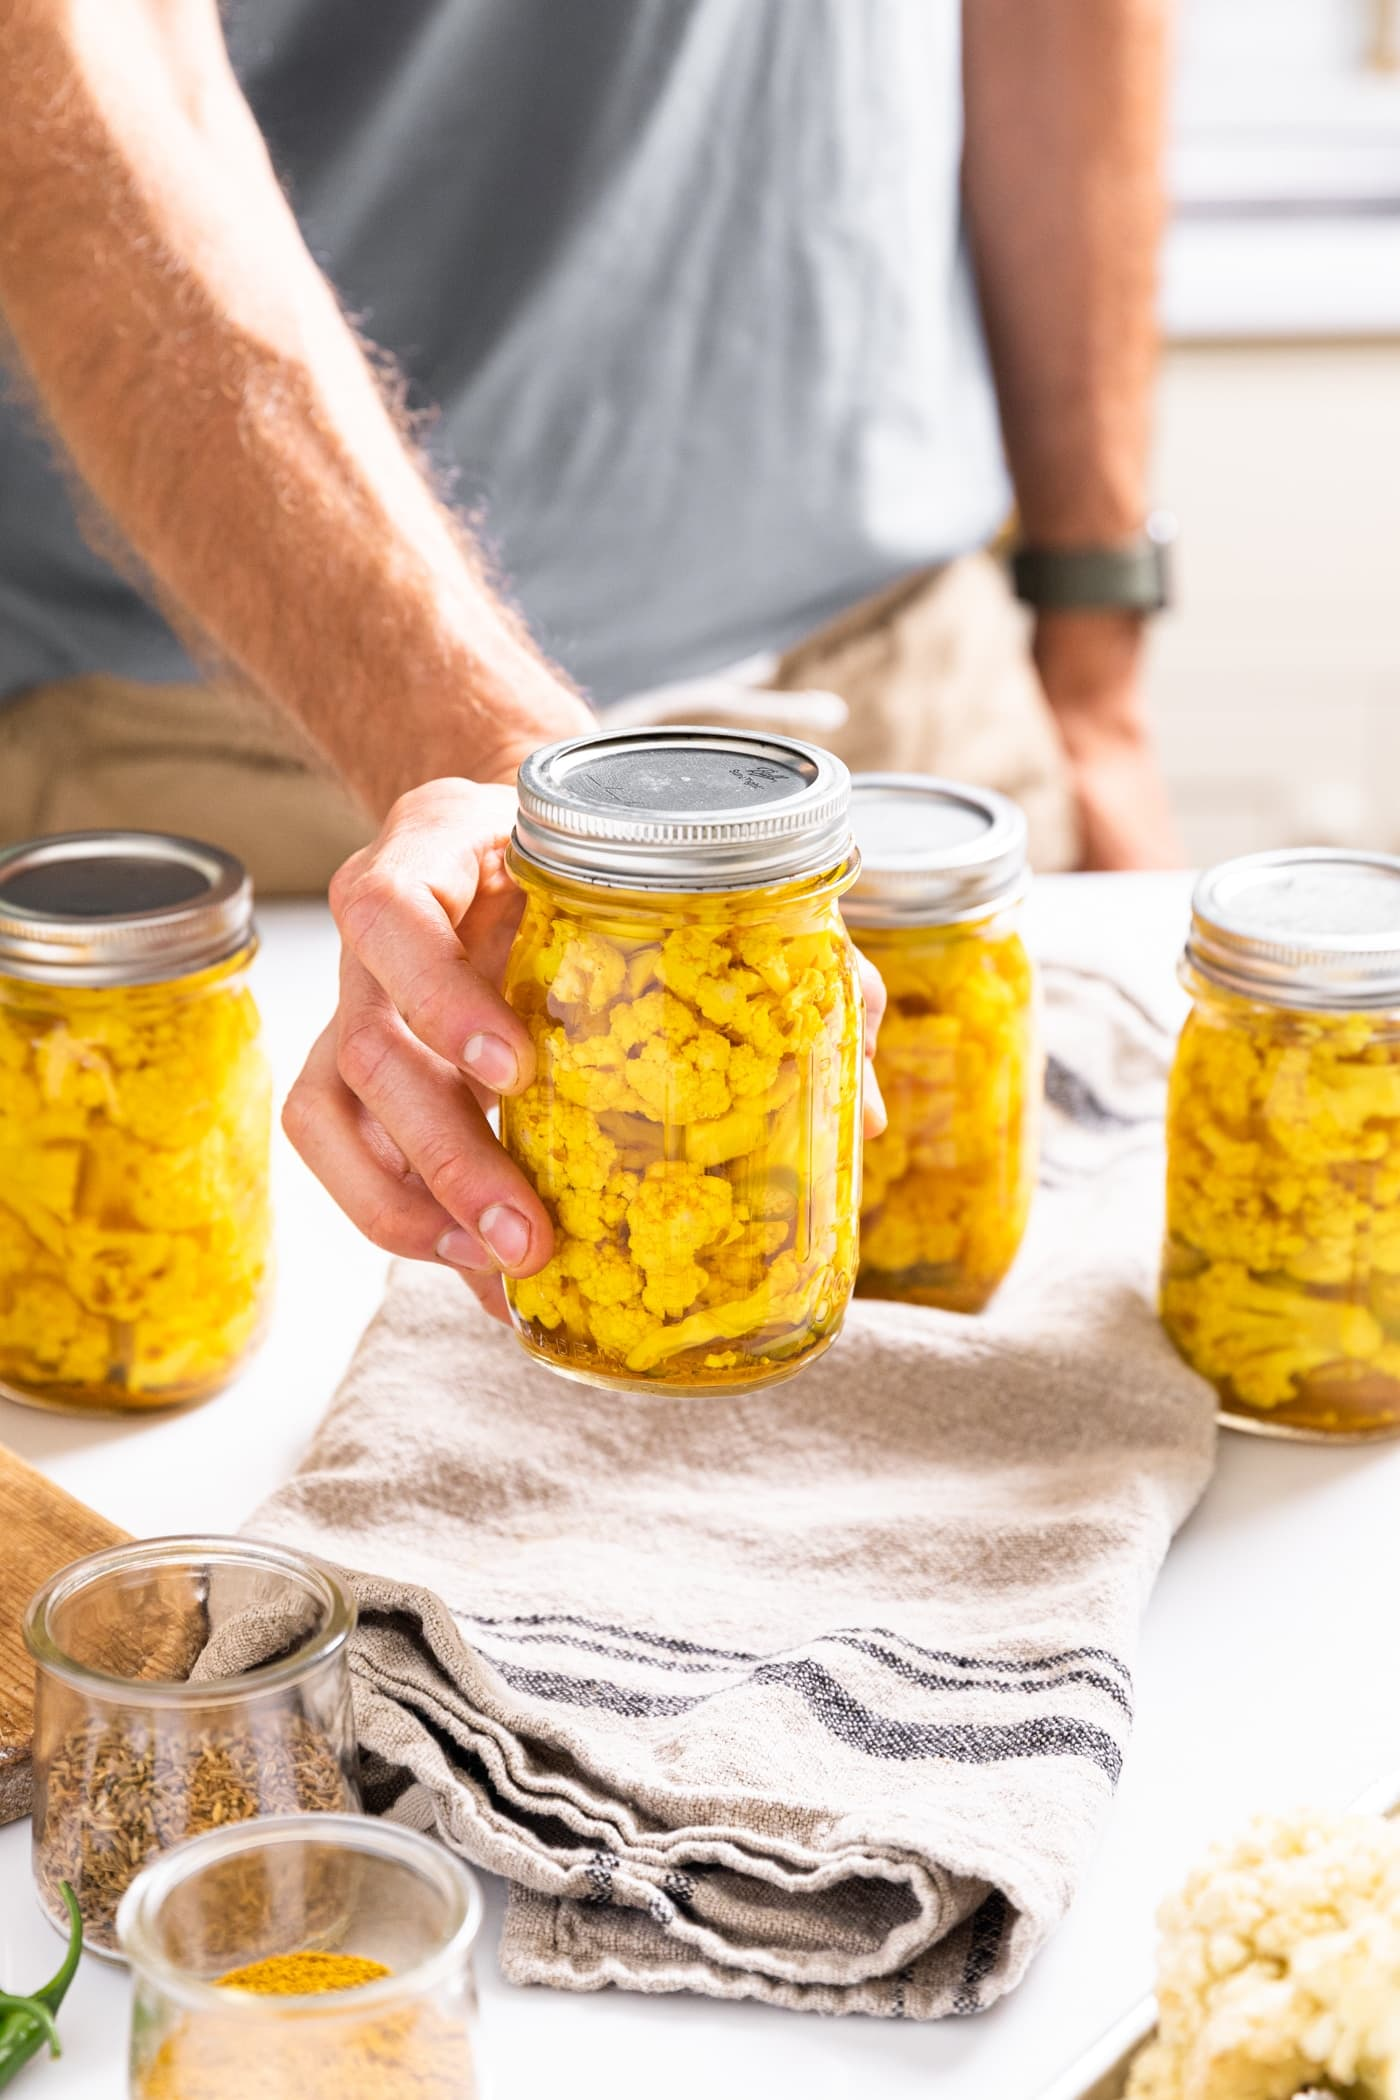 Hand holding glass jar filled with yellow pickled cauliflower with other filled jars in background all one white countertop with spices around